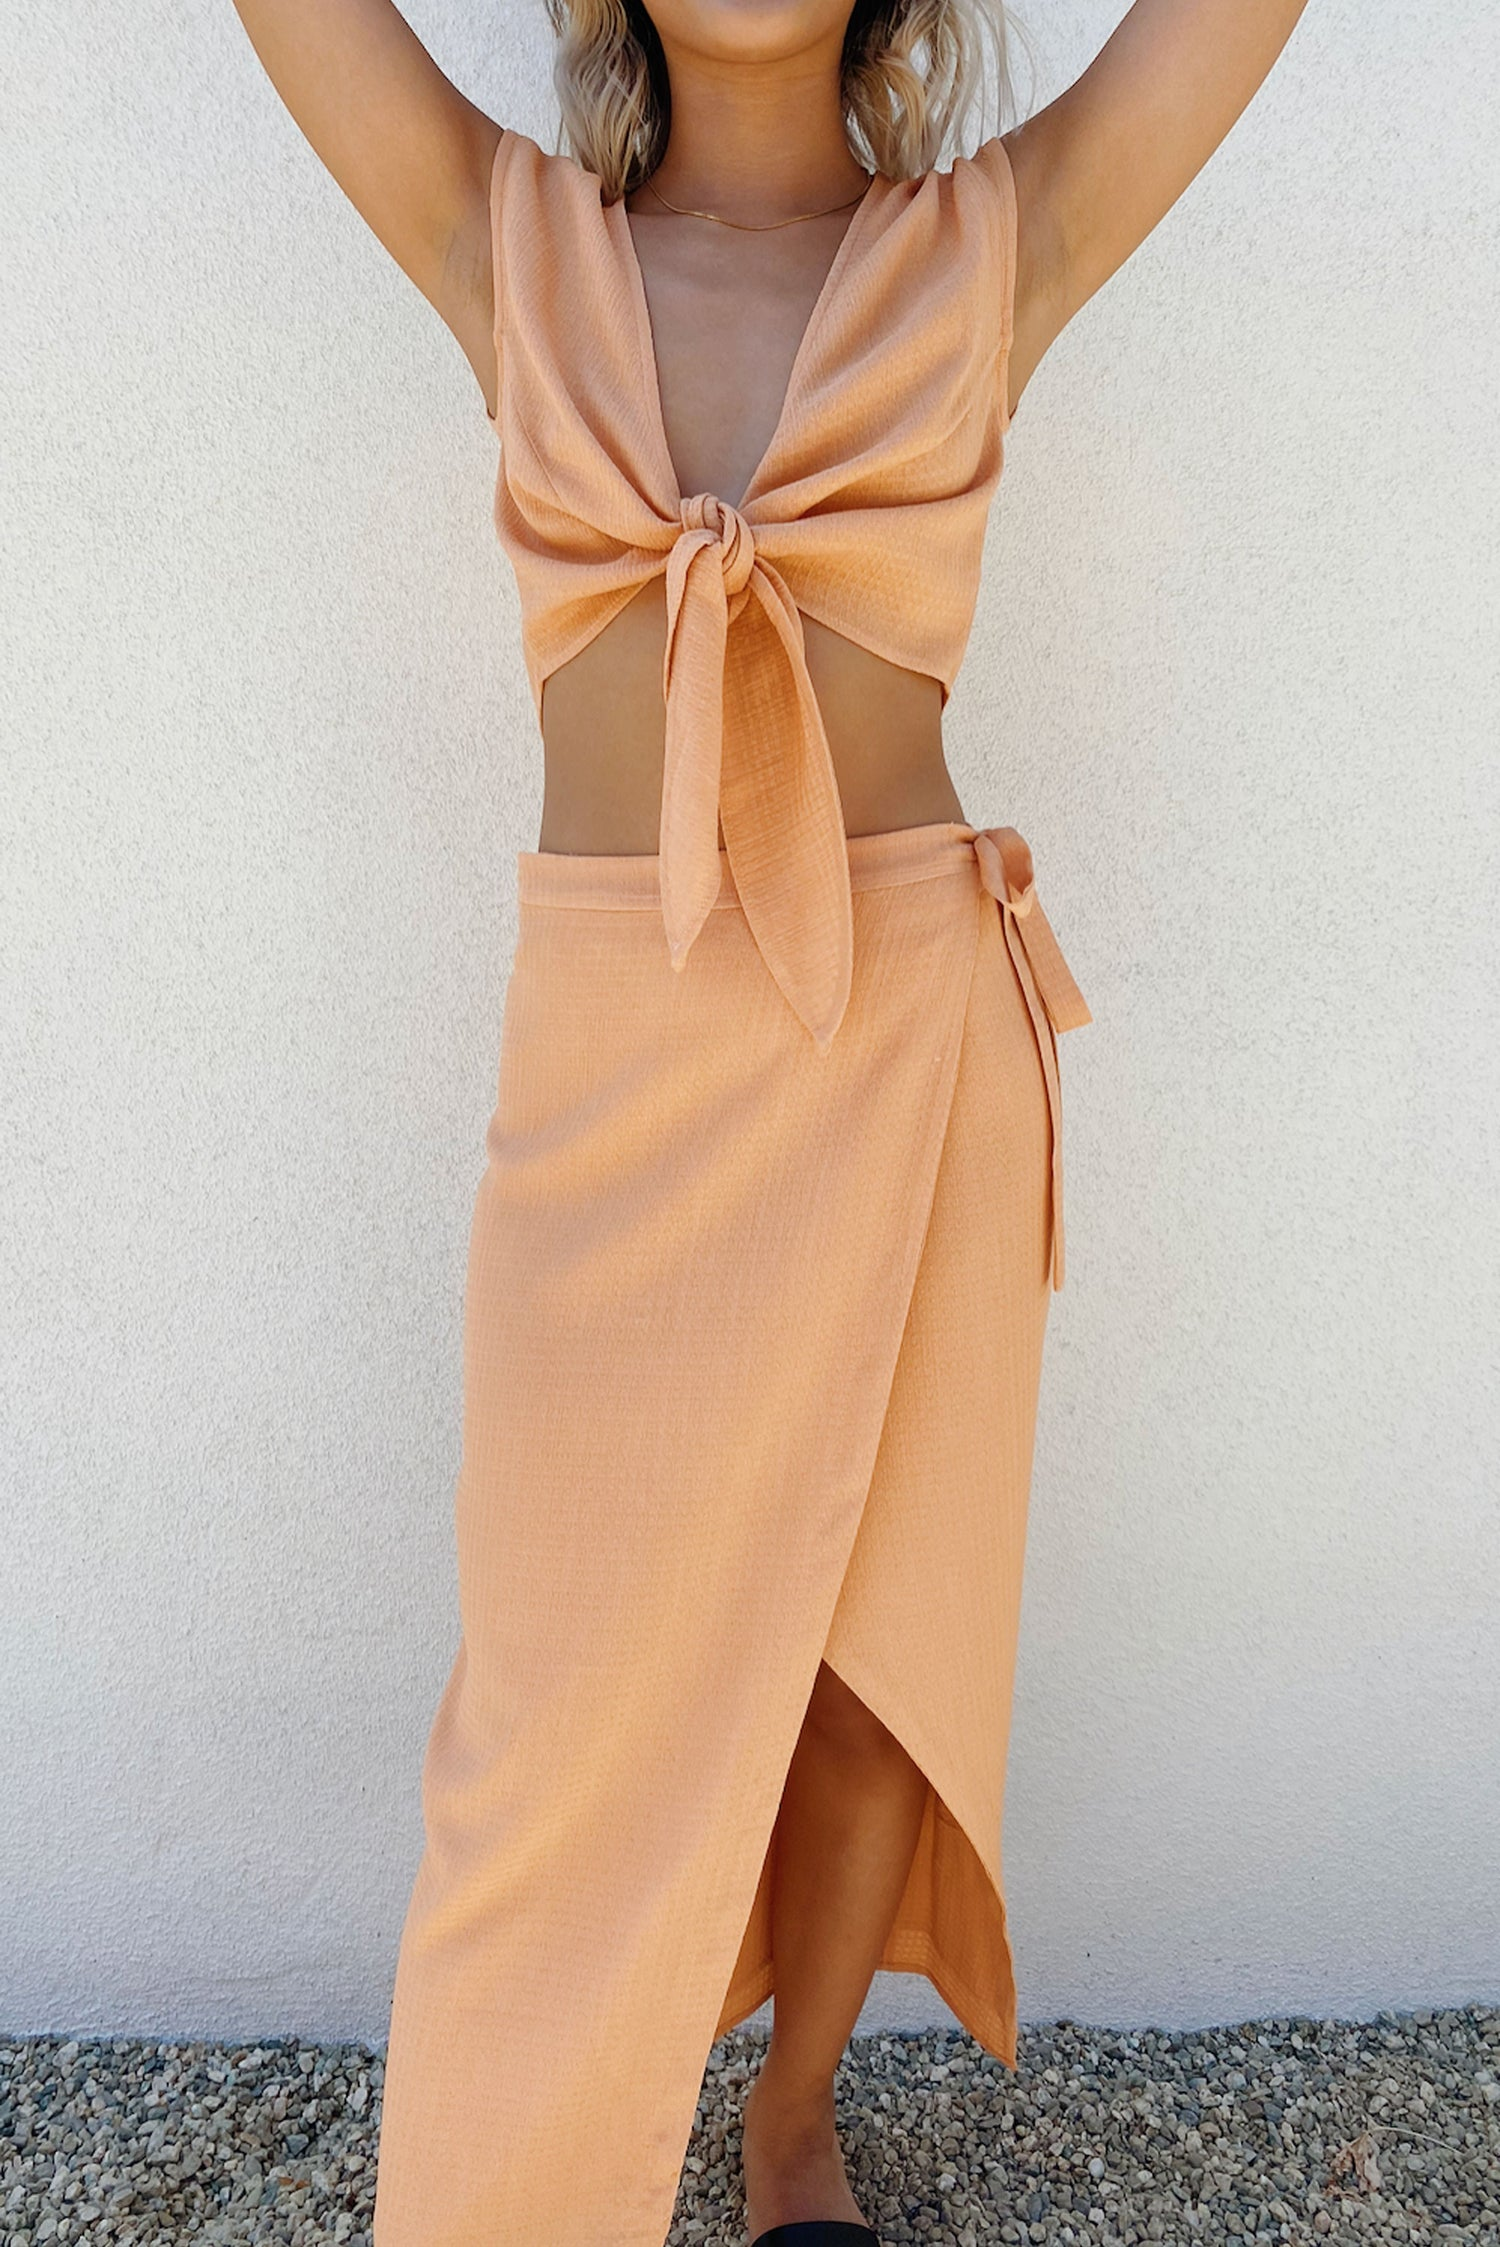 Valentina Top in Peach